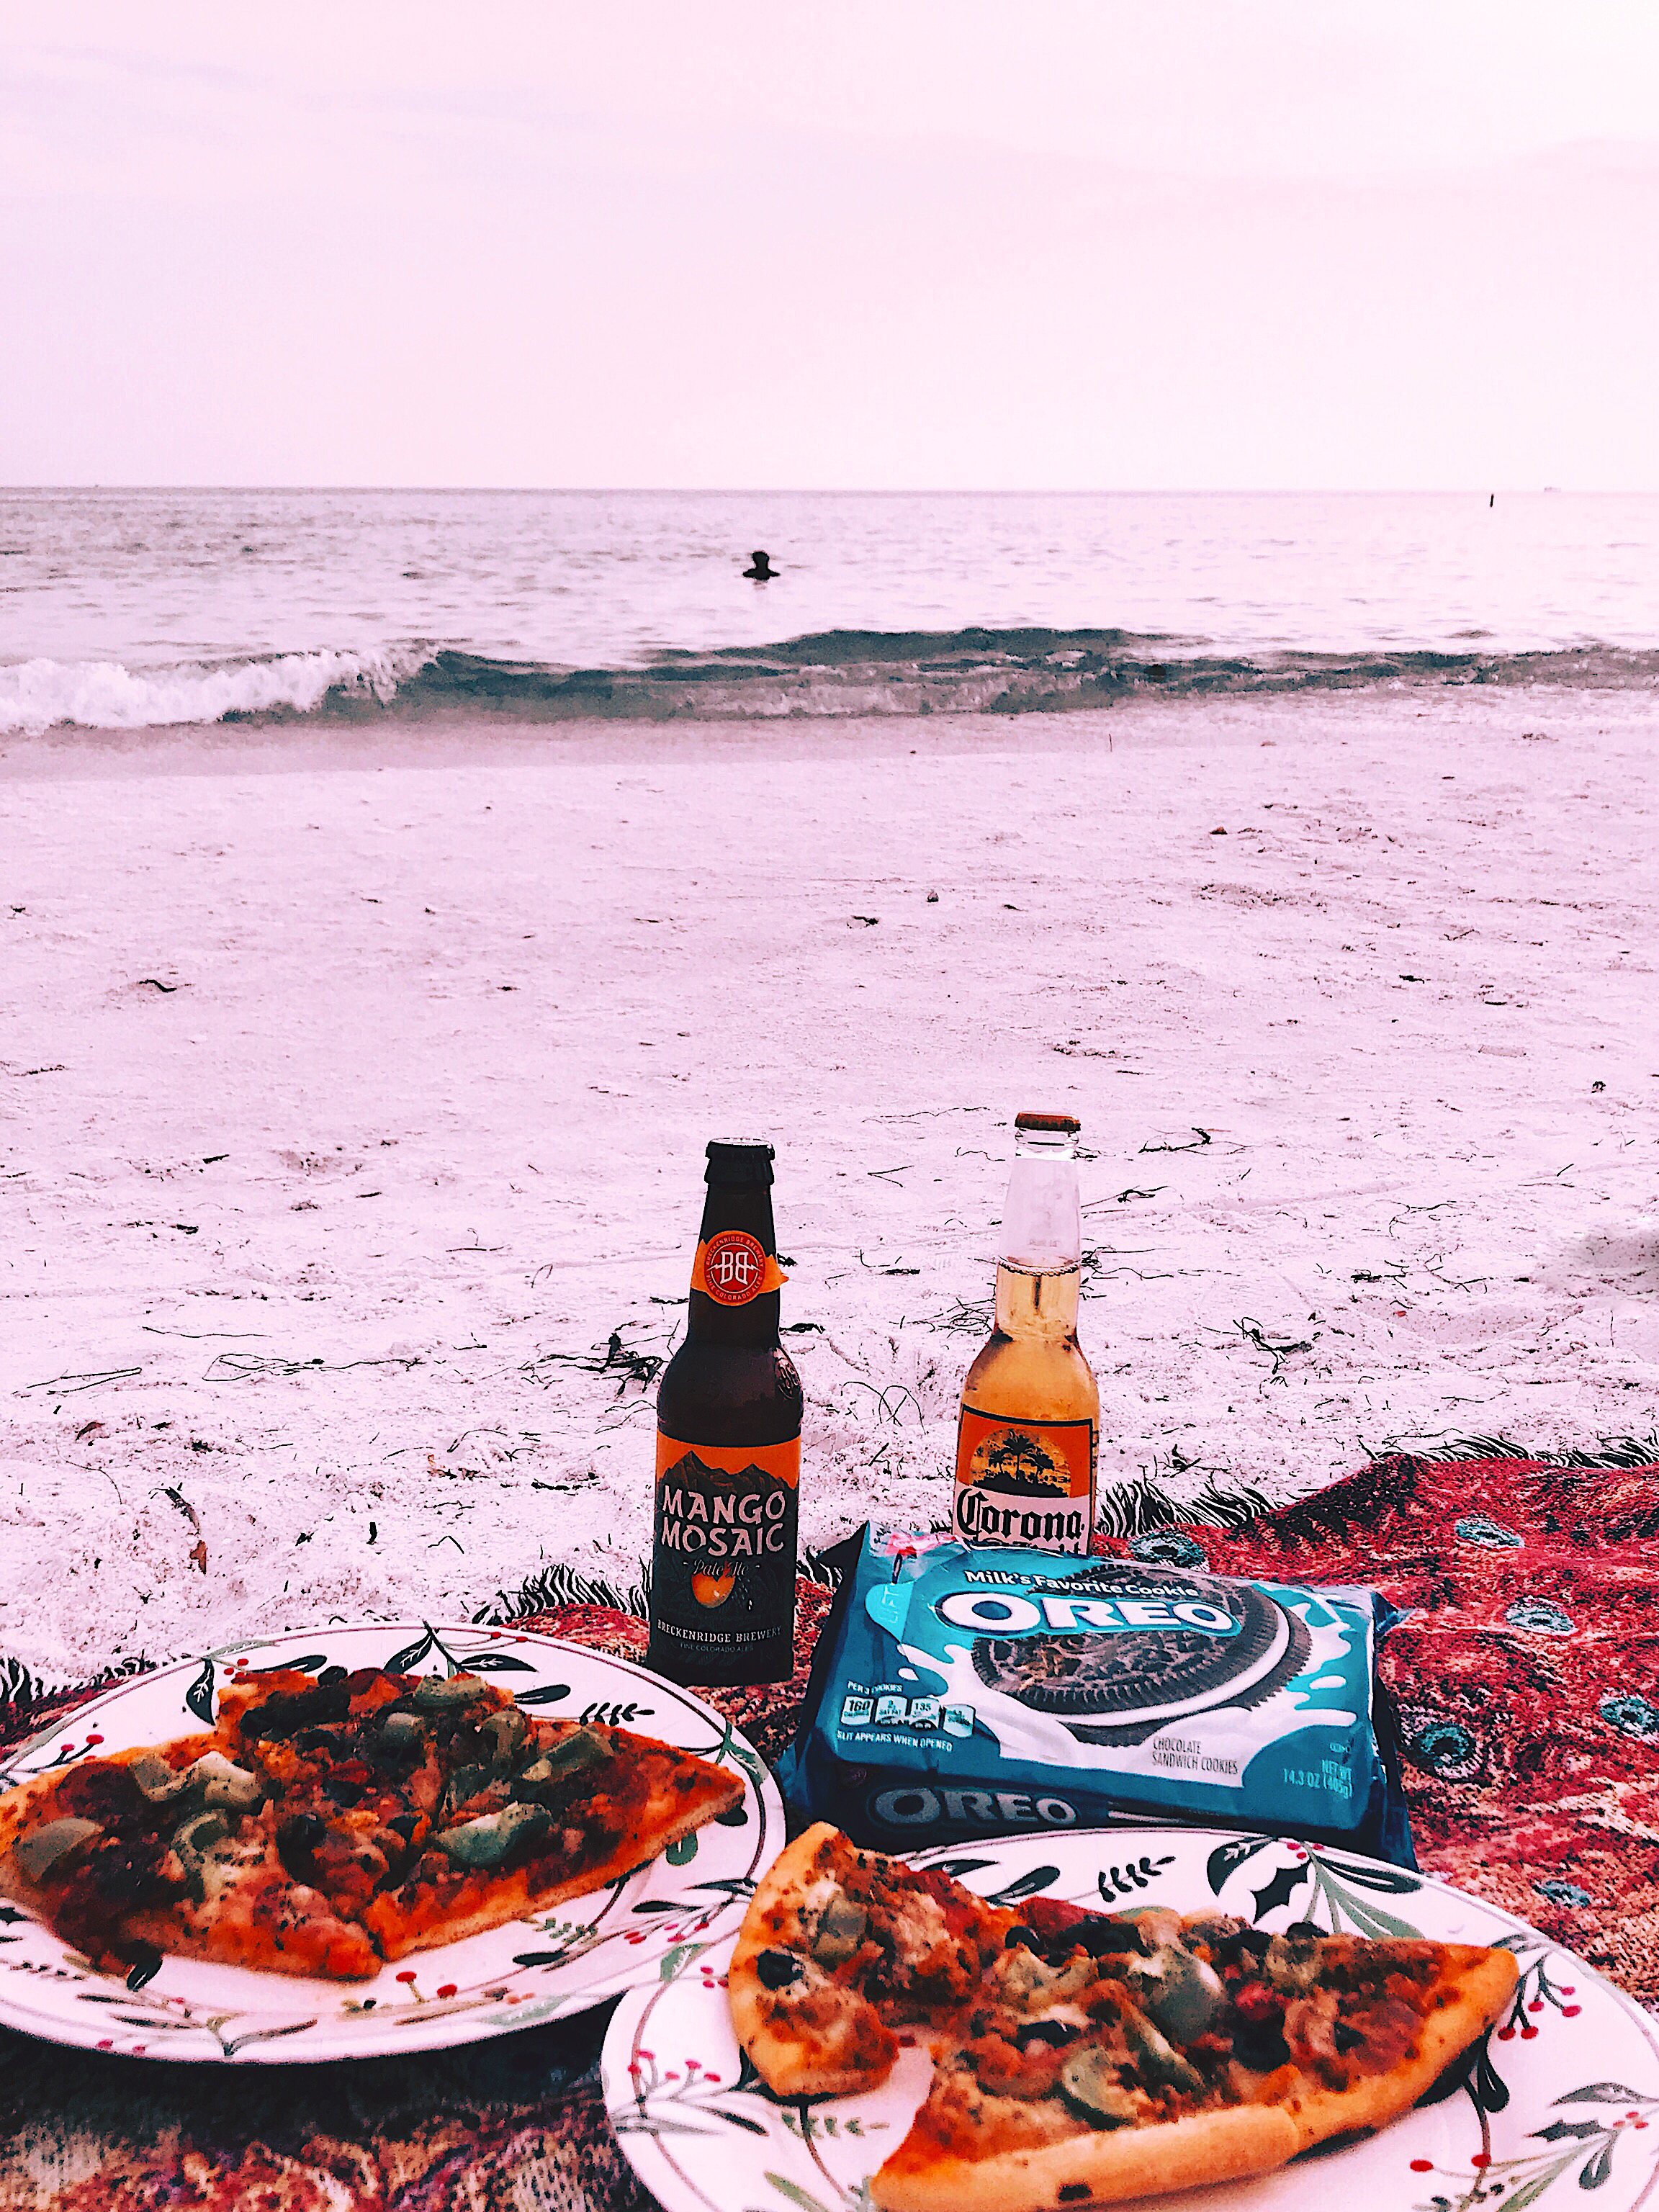 Beach Picnic Oreo Pizza Style Unsettled